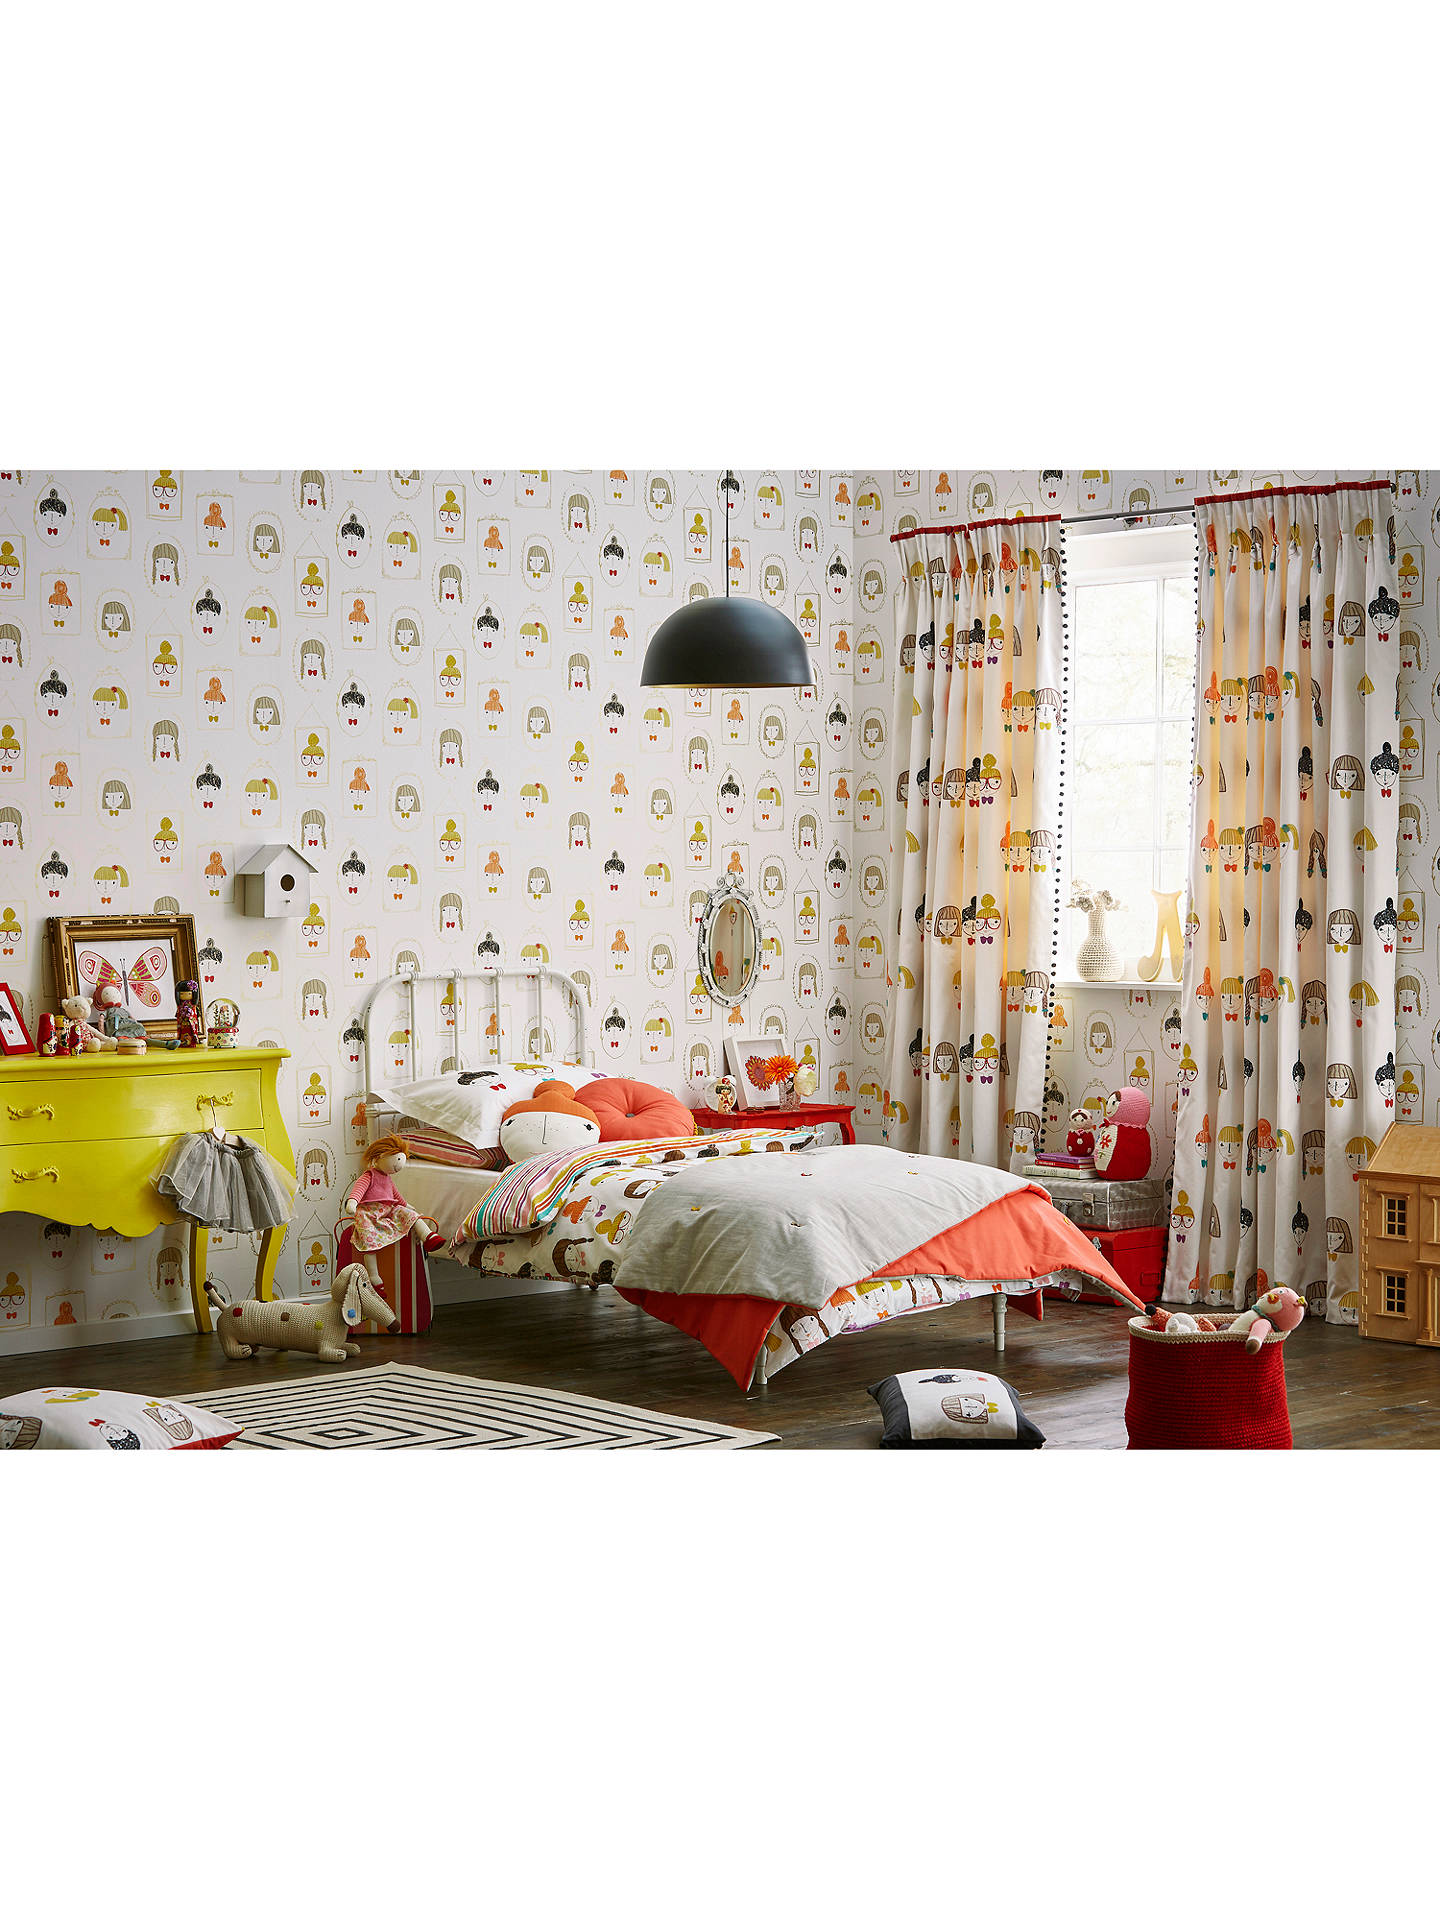 BuyScion Hello Dolly Wallpaper, 111266 Online at johnlewis.com